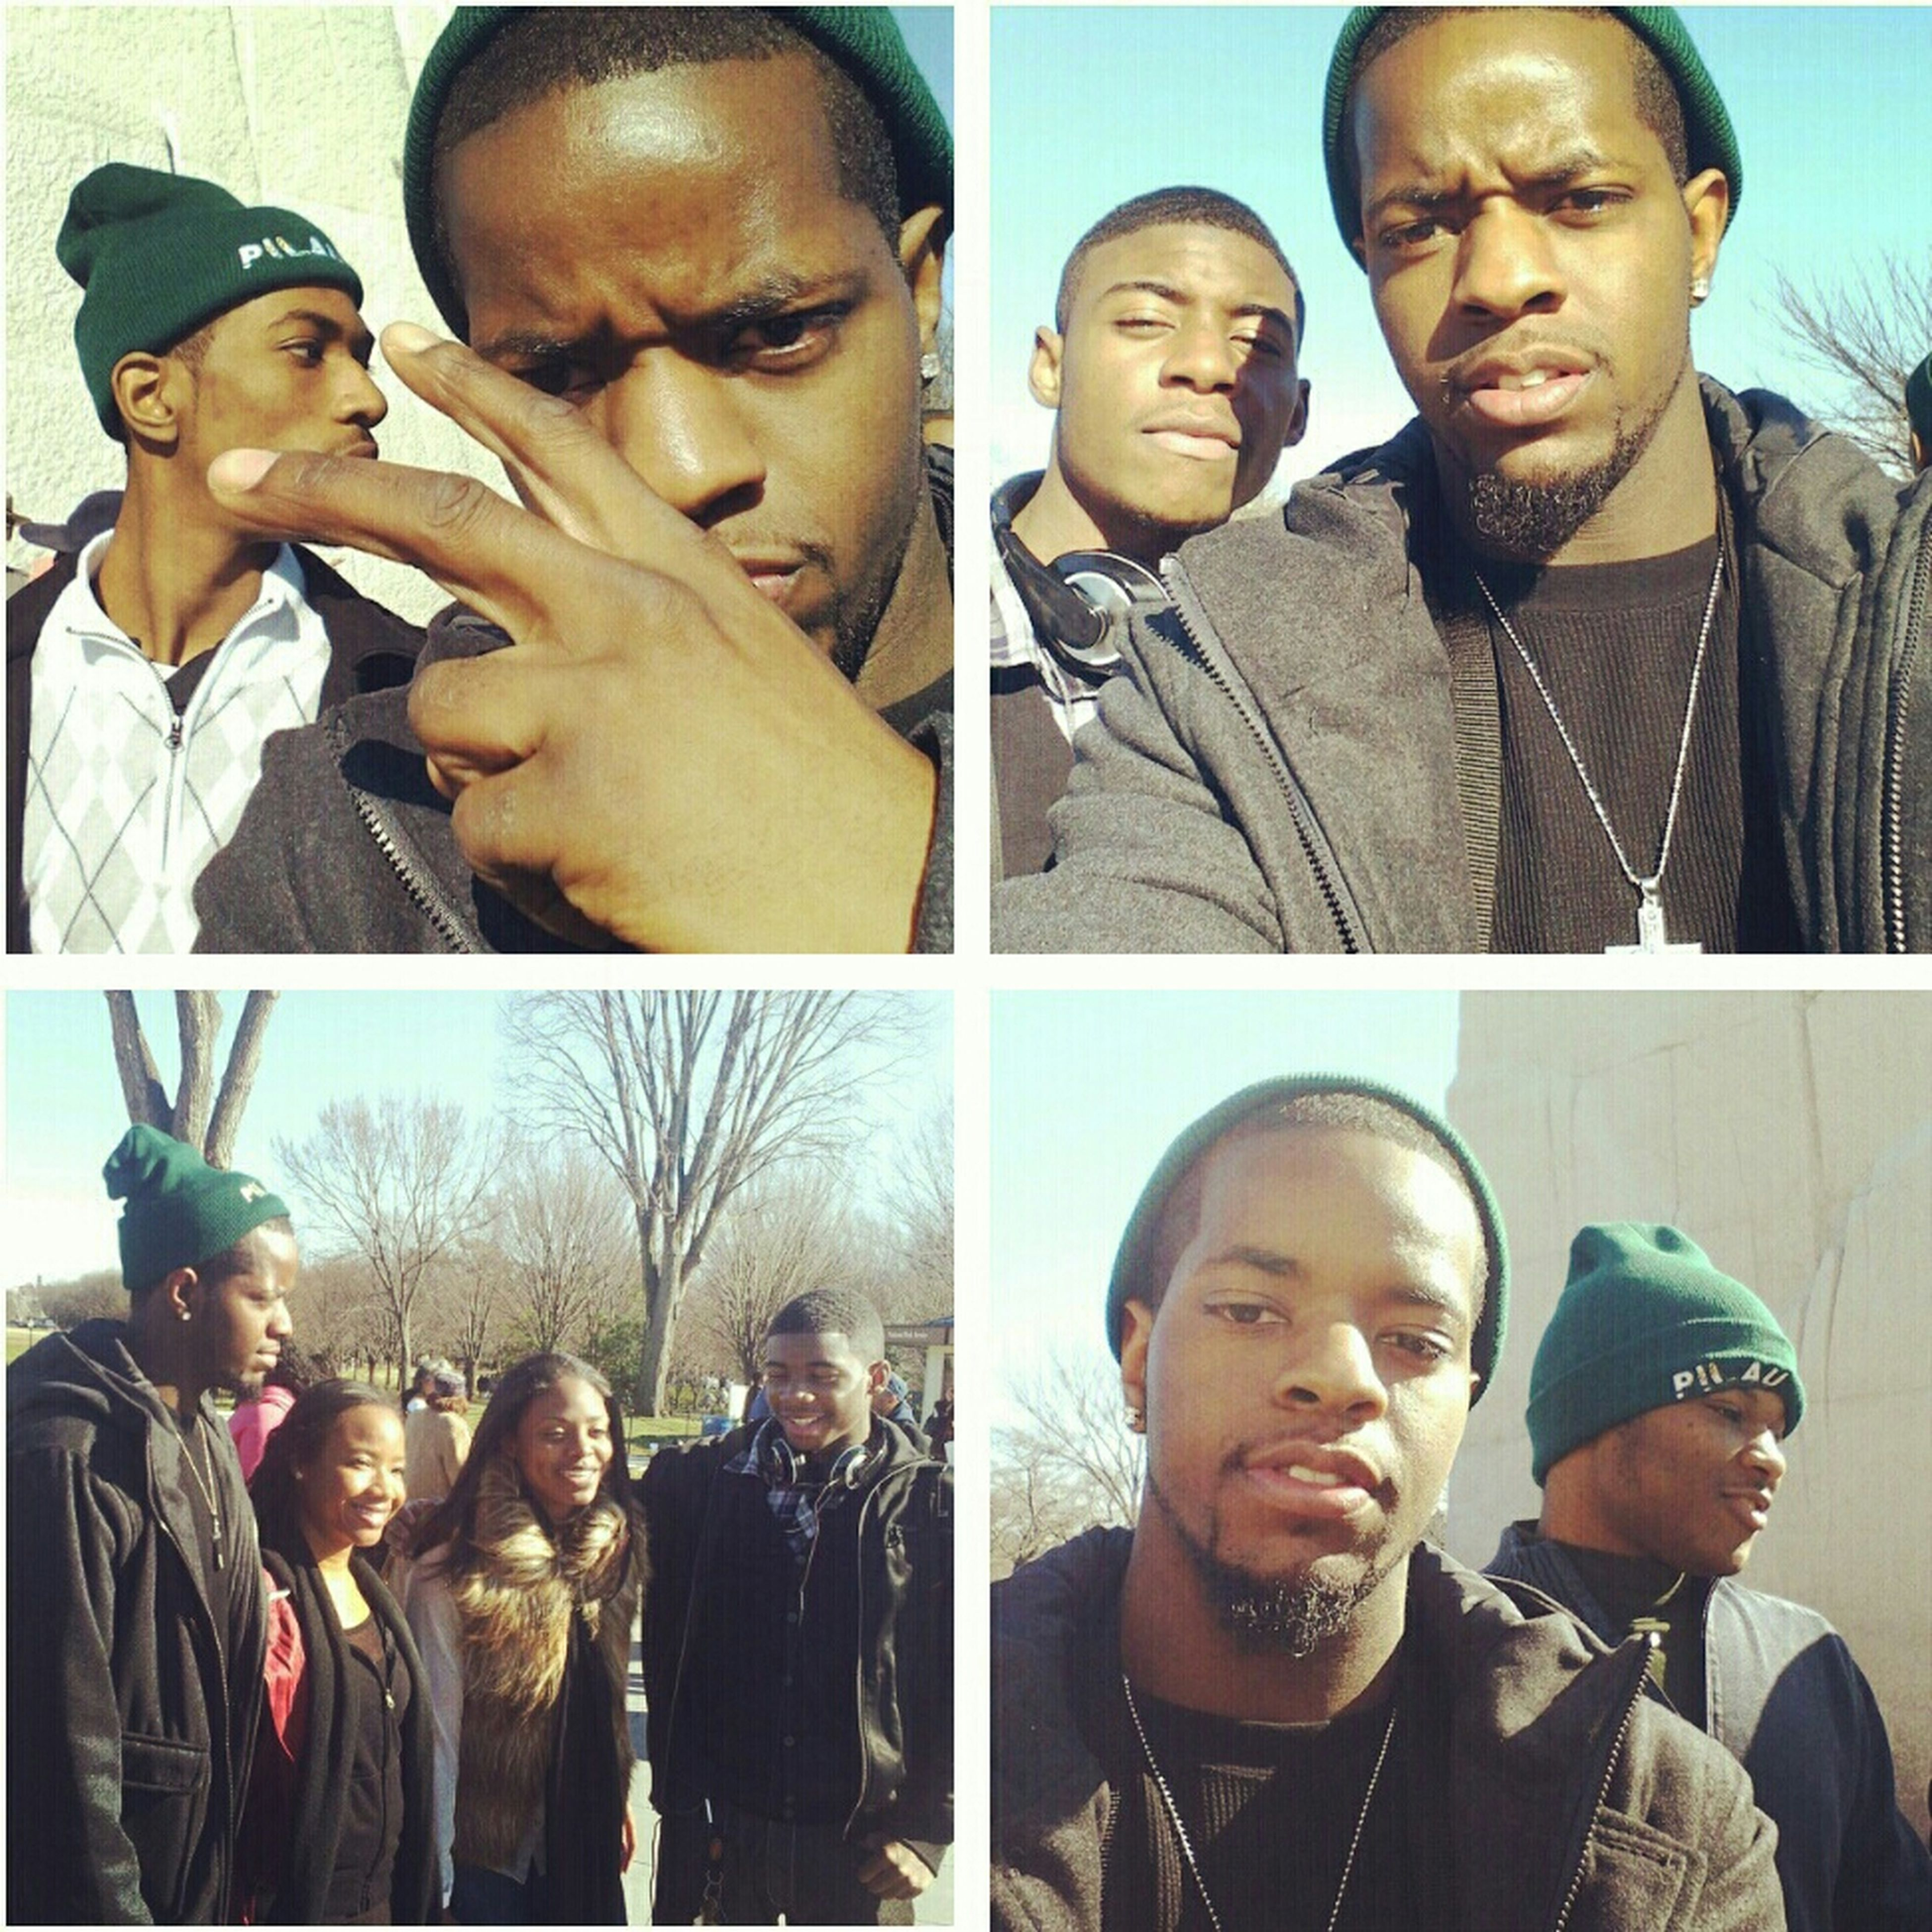 Hanging Out....Chilling With Da Bros